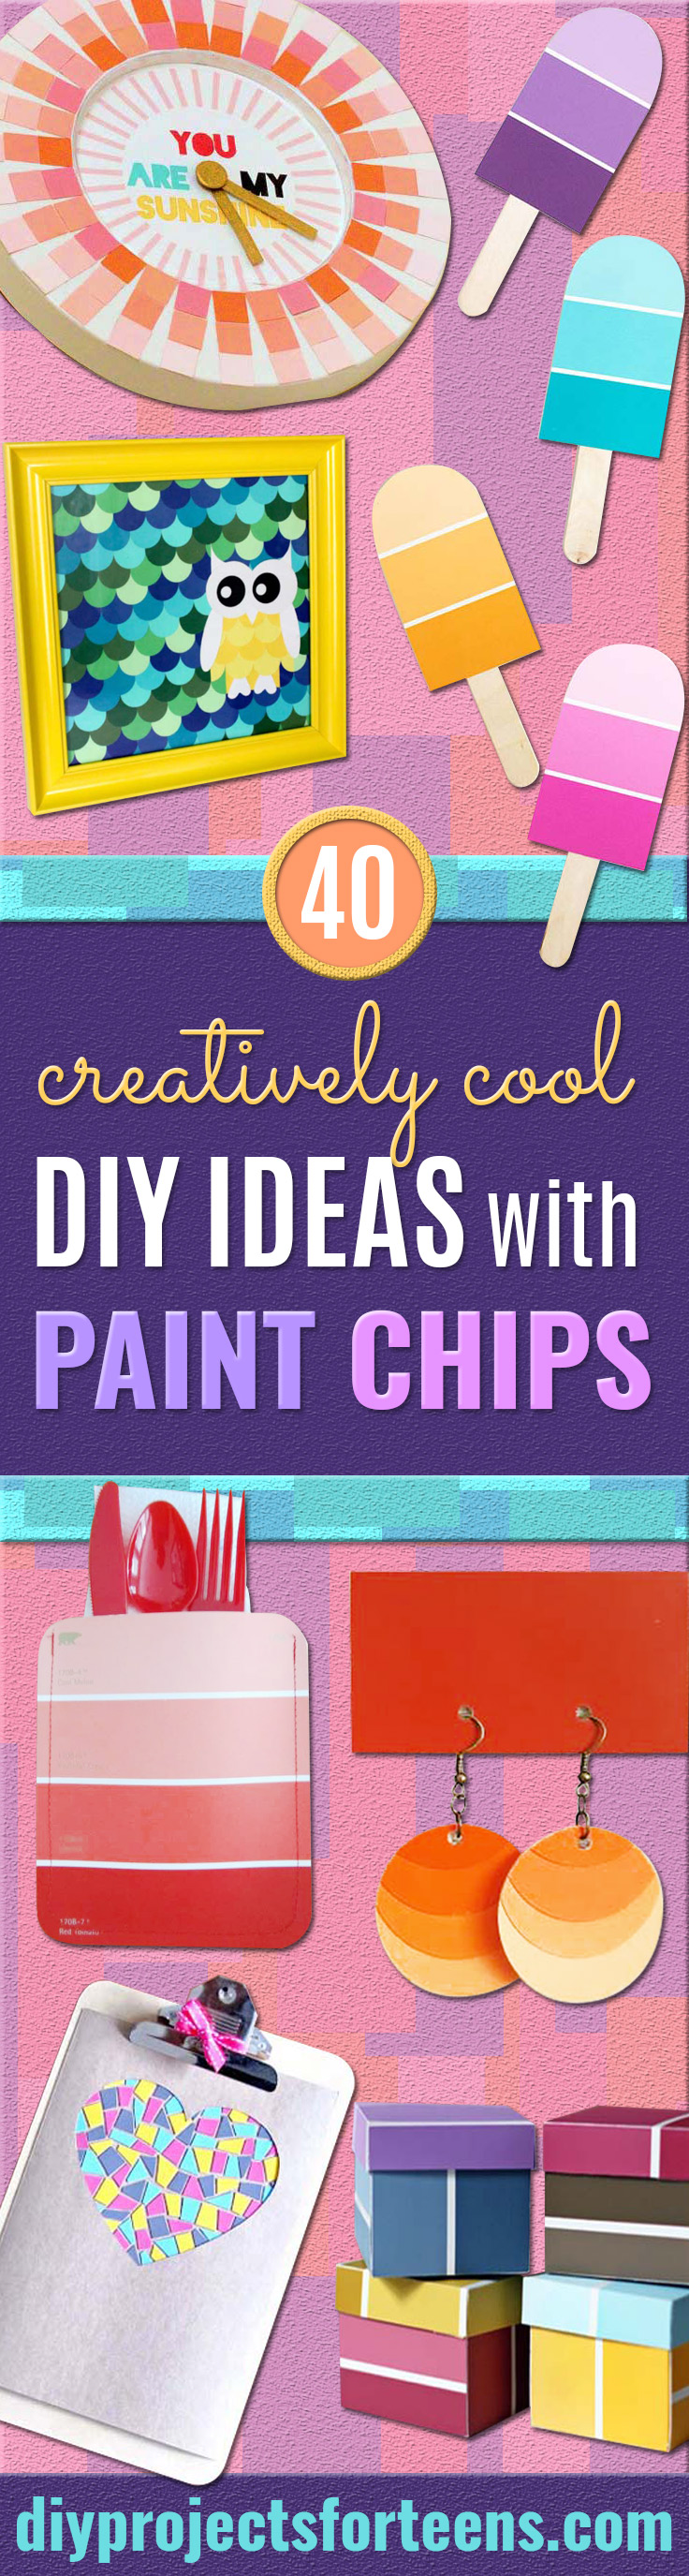 DIY Projects Made With Paint Chips   Best Creative Crafts, Easy DYI Projects  You Can